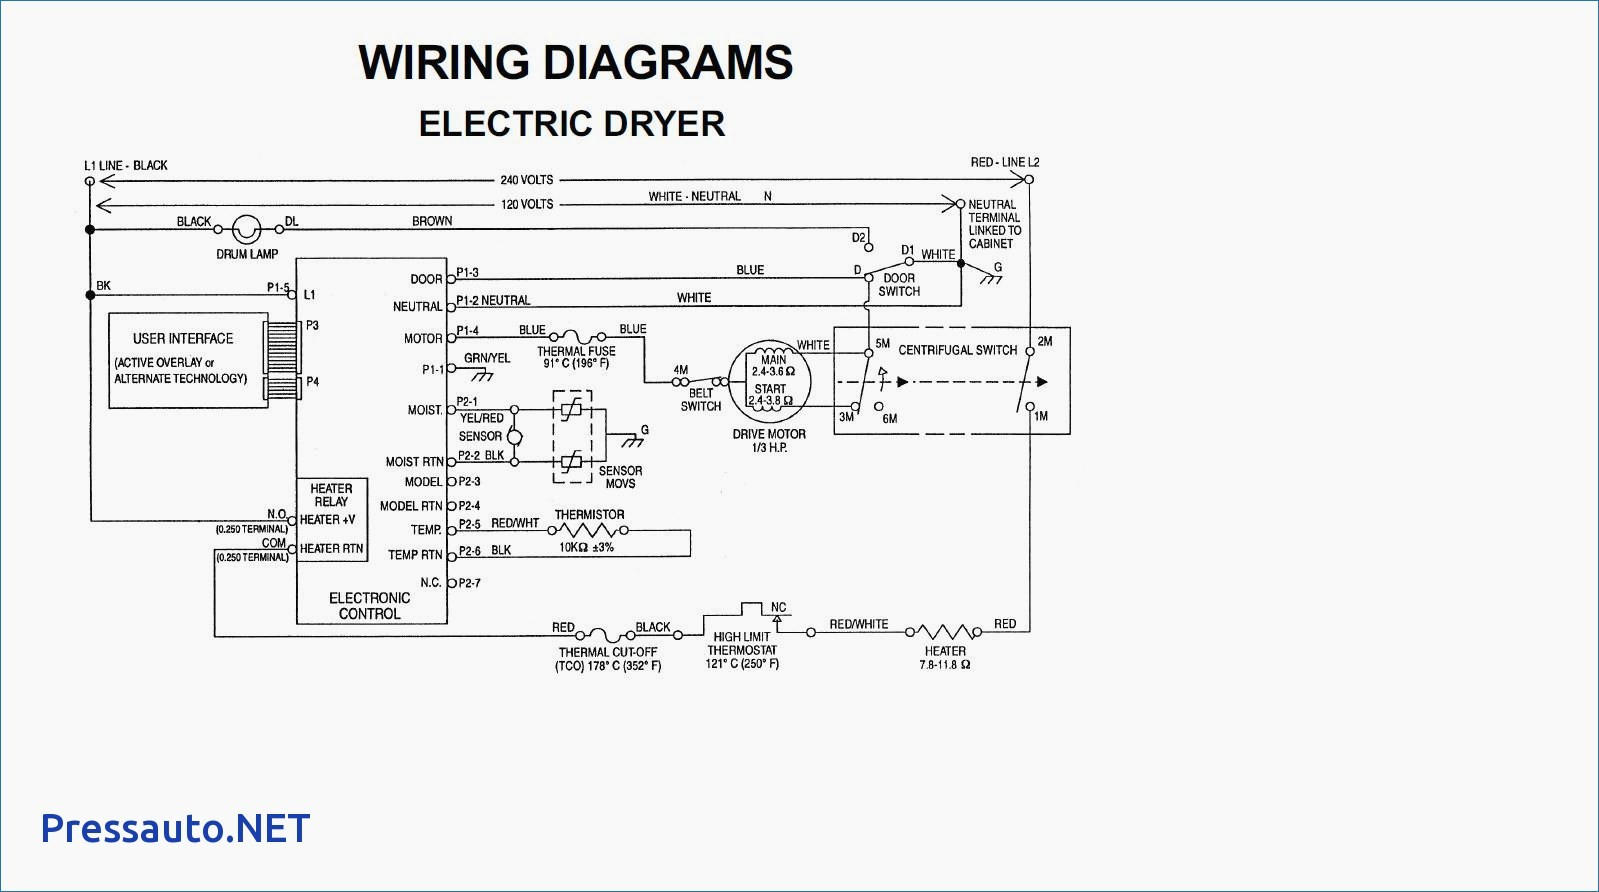 Roper Oven Wiring Diagram Detailed Schematics Dacor Range Electric Stove Schematic Diagrams Res7745rqo Dryer Ge Jkp1